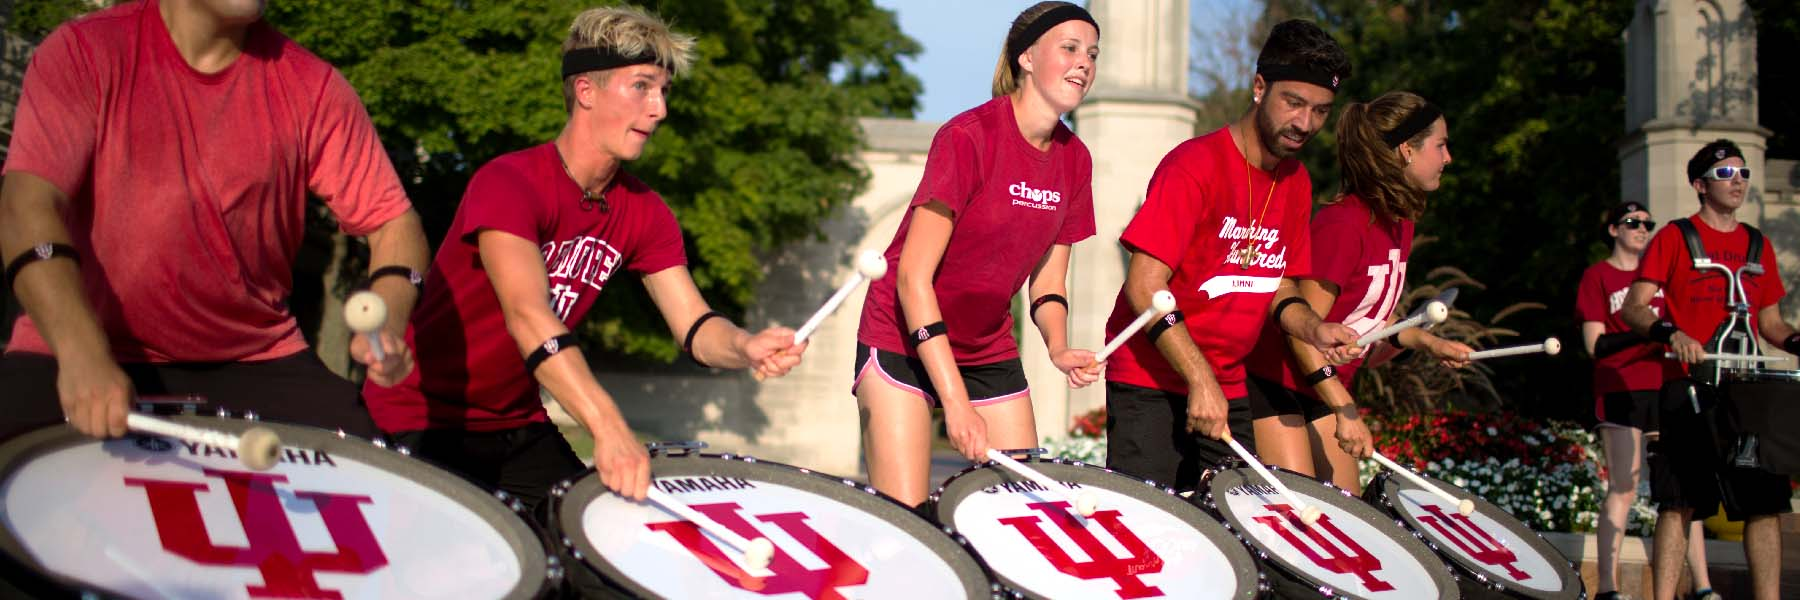 Members of the Marching Hundred play drums on a sunny day.